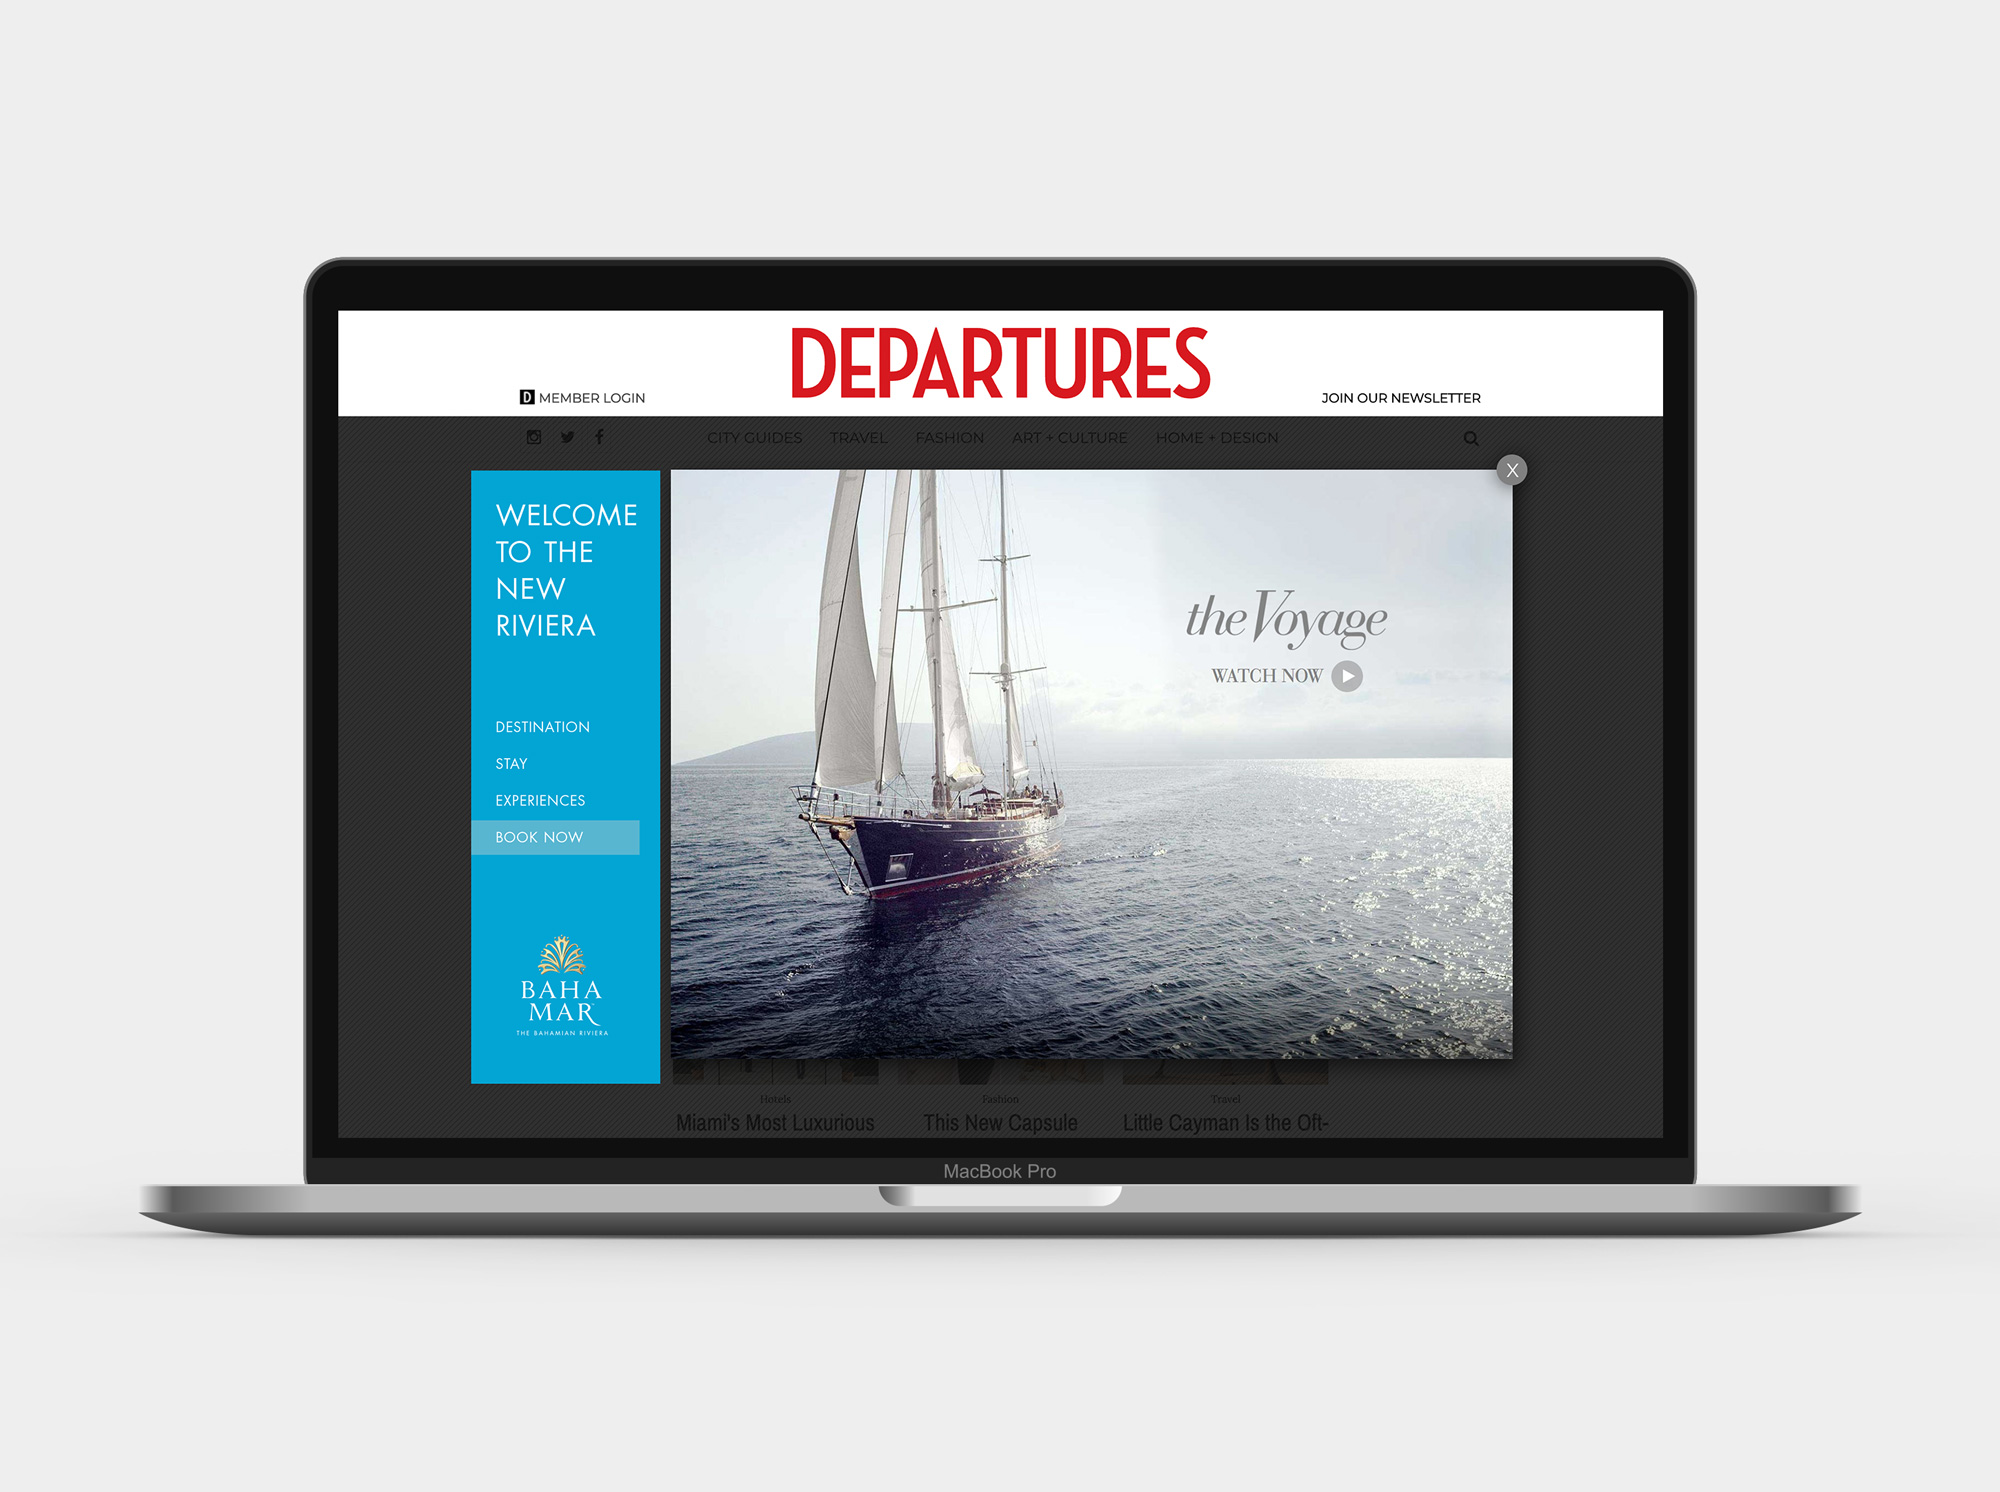 Film on Departures website